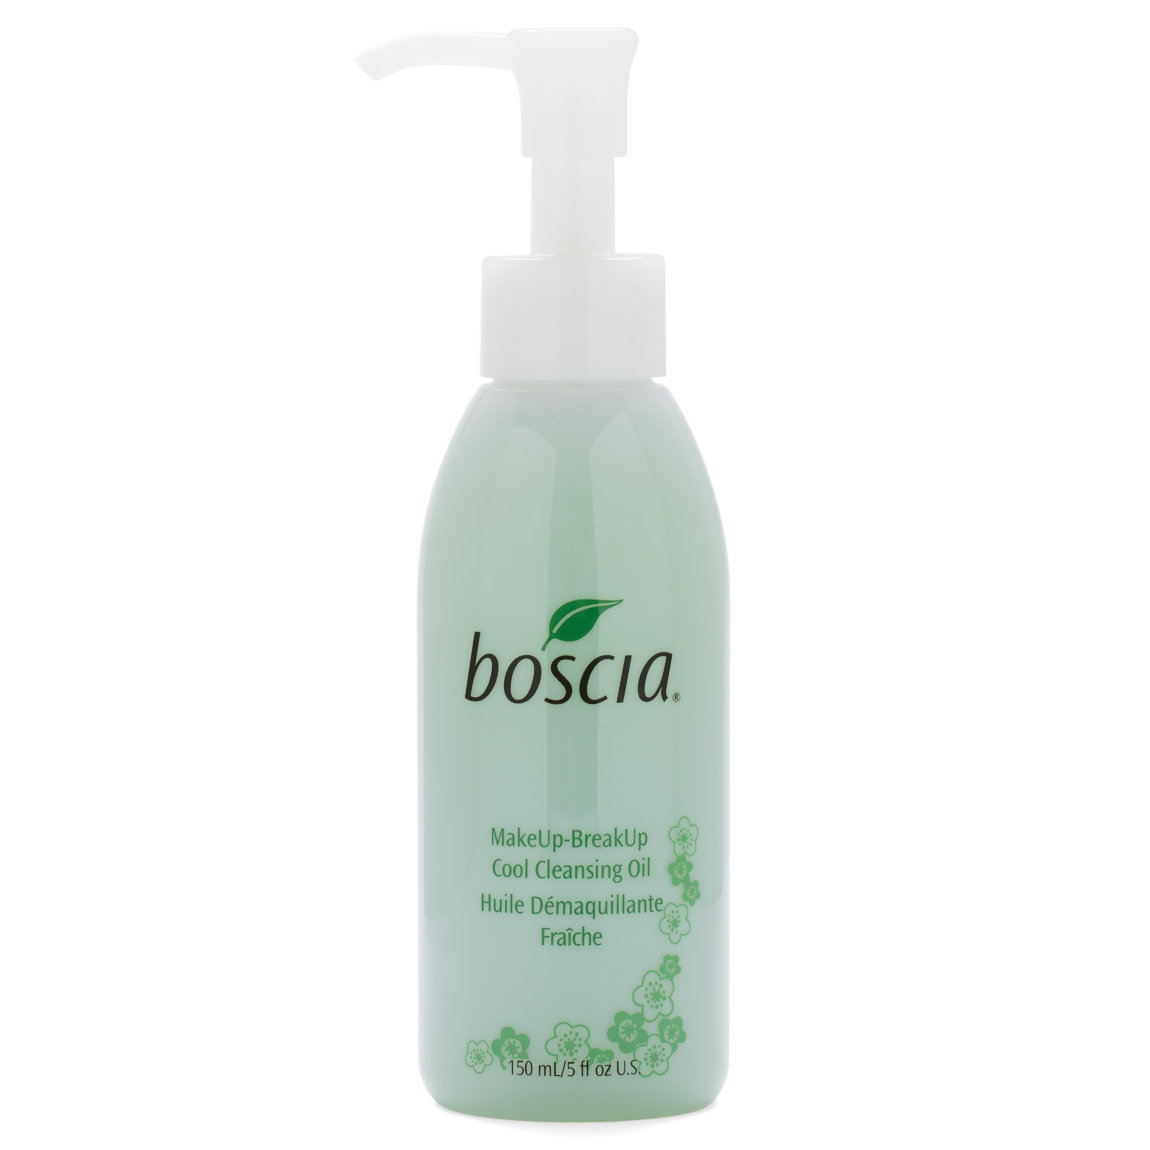 boscia MakeUp-BreakUp Cool Cleansing Oil 150 ml product swatch.